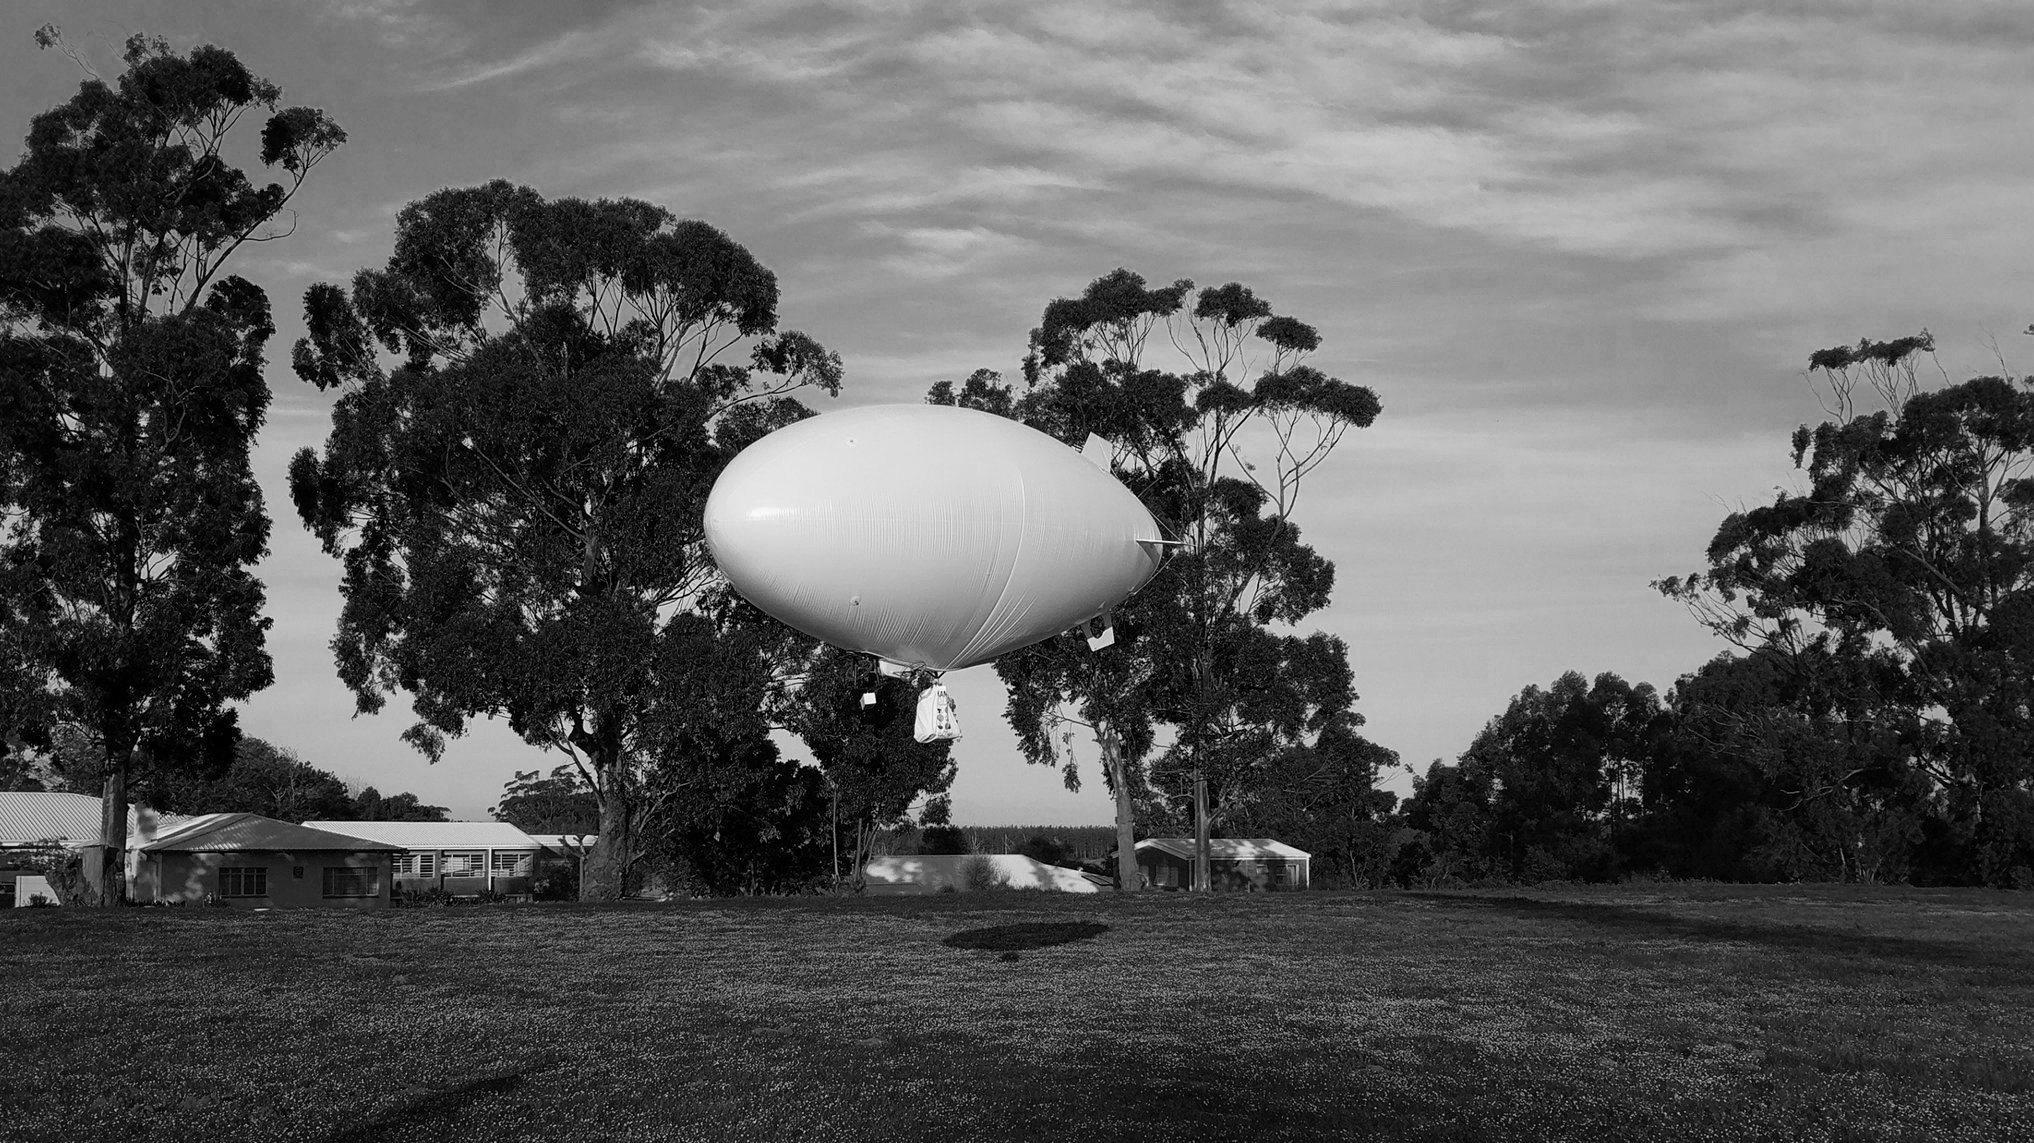 Autonomous Airship being tested   Source: CloudLine